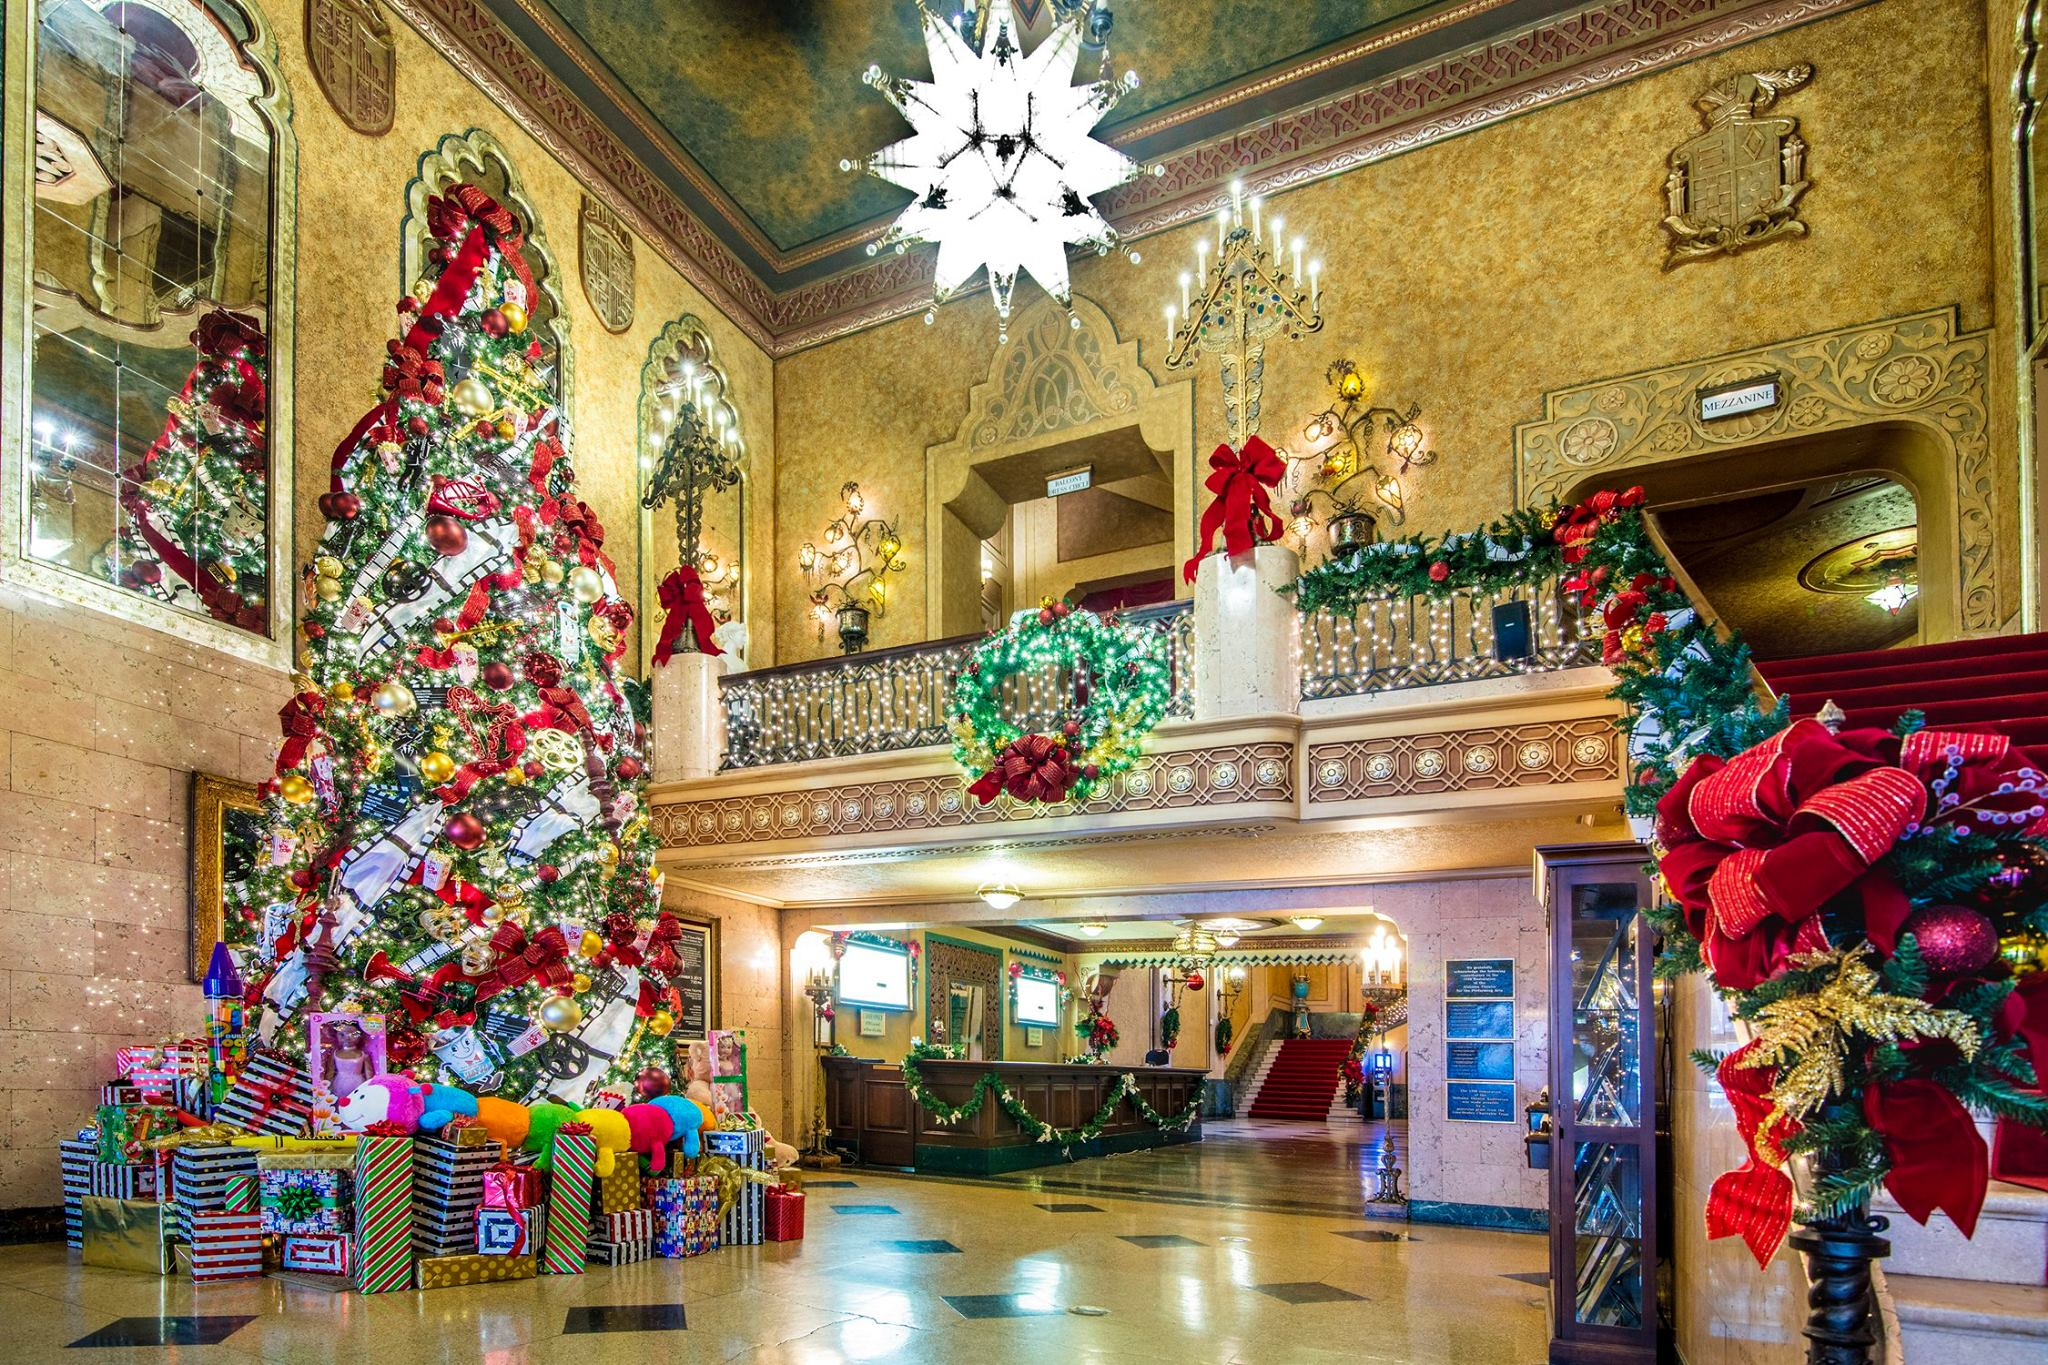 Alabama Theatre decorated or christmas, Alabama Theatre lobby, holiday decorations